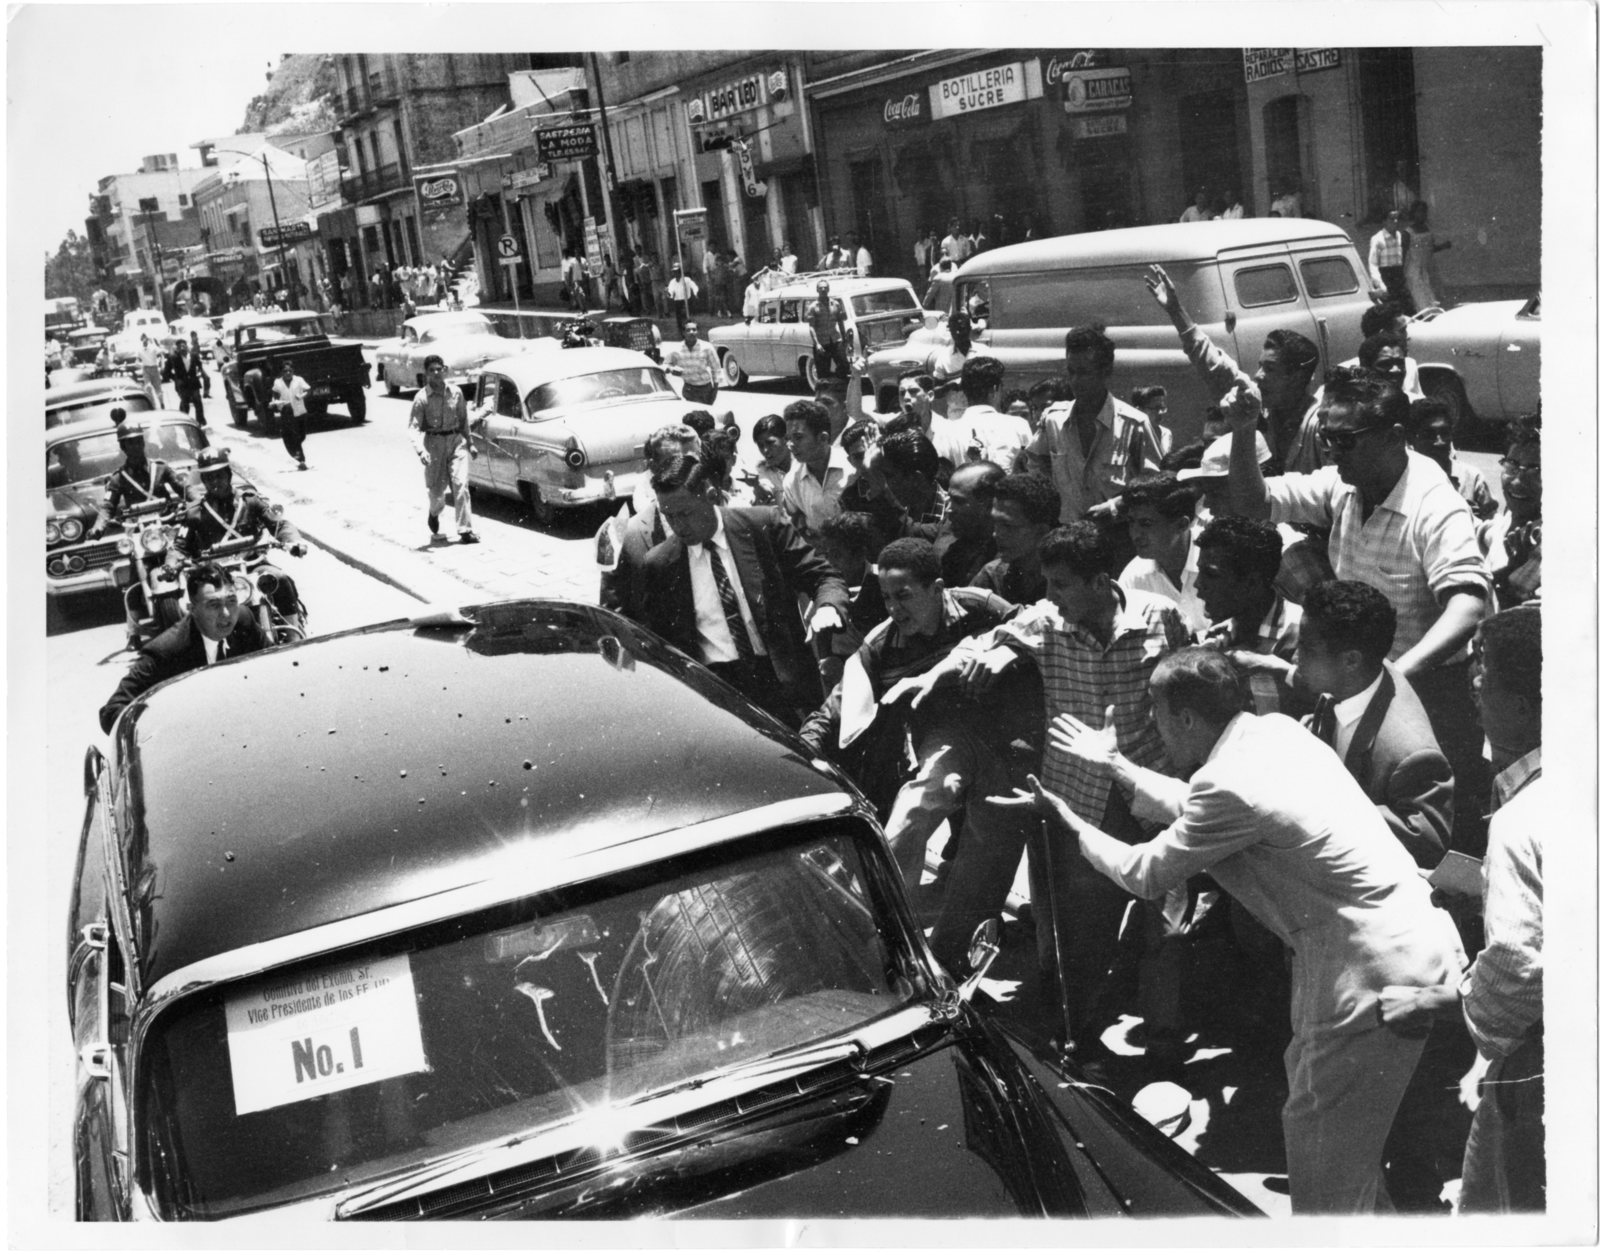 Vice President Richard Nixon's motorcade drives through Caracas, Venezuela and is attacked by demonstrators